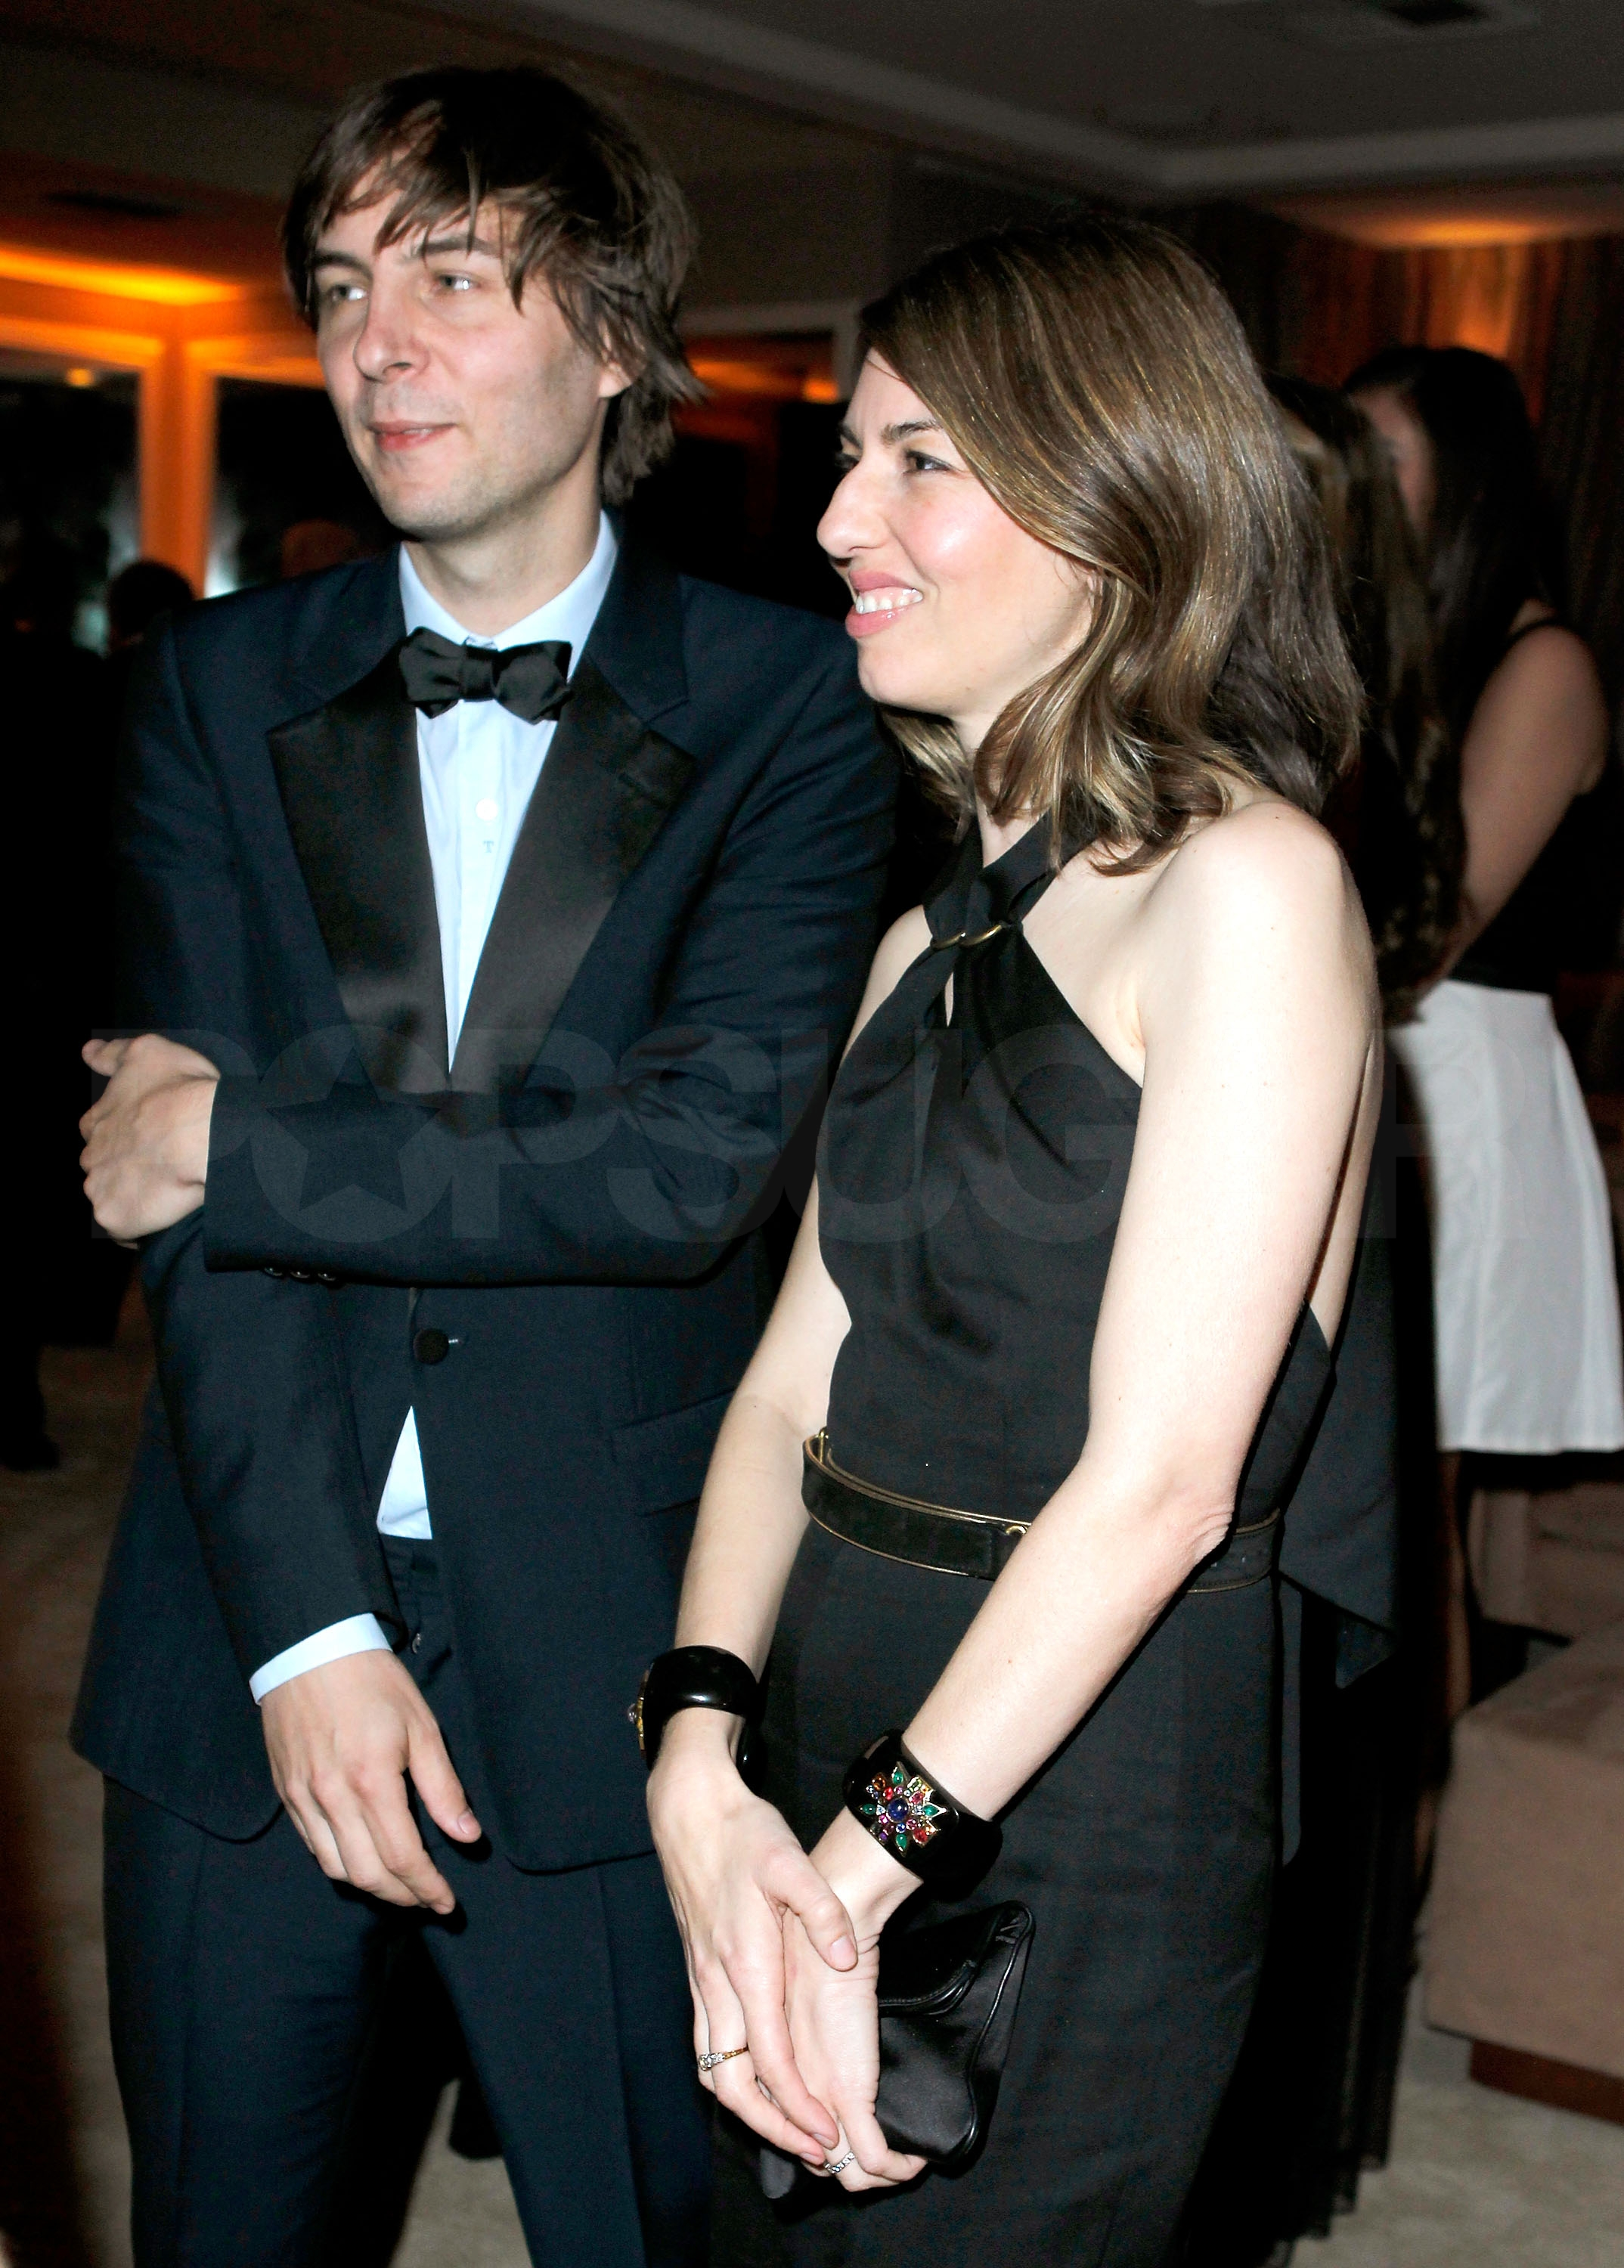 In Style Magazine moreover Leo And Tobey The Greatest Bromance Hollywood Ever Told in addition Keira Knightley Molly Sims Isla Fisher Benedict Cumberbatch S Wife Pregnant Bellies also Jared Leto Hair Transformation additionally Catherine Deneuve Style Photos. on oscar celebrity parties